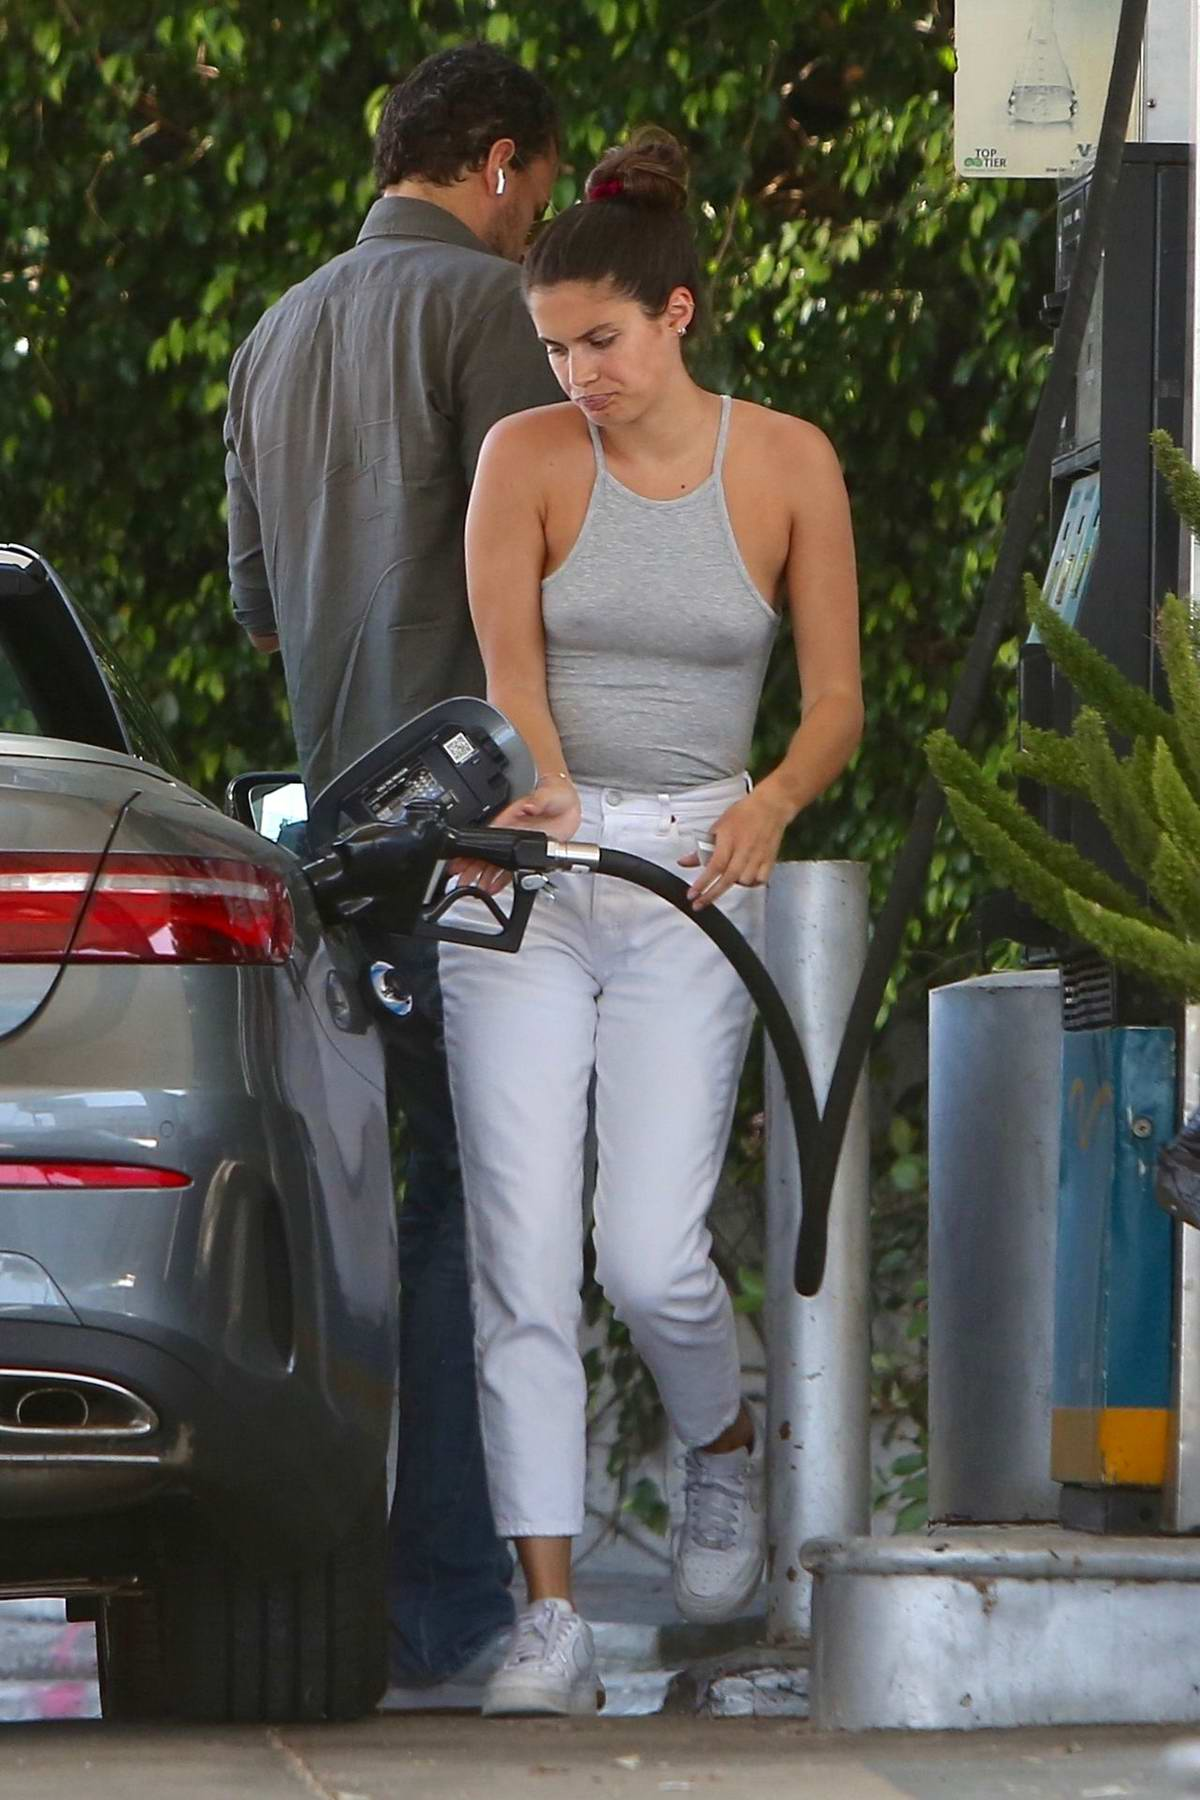 Sara Sampaio rocks a tank top as she stops to fill up her car at a gas station in West Hollywood, California